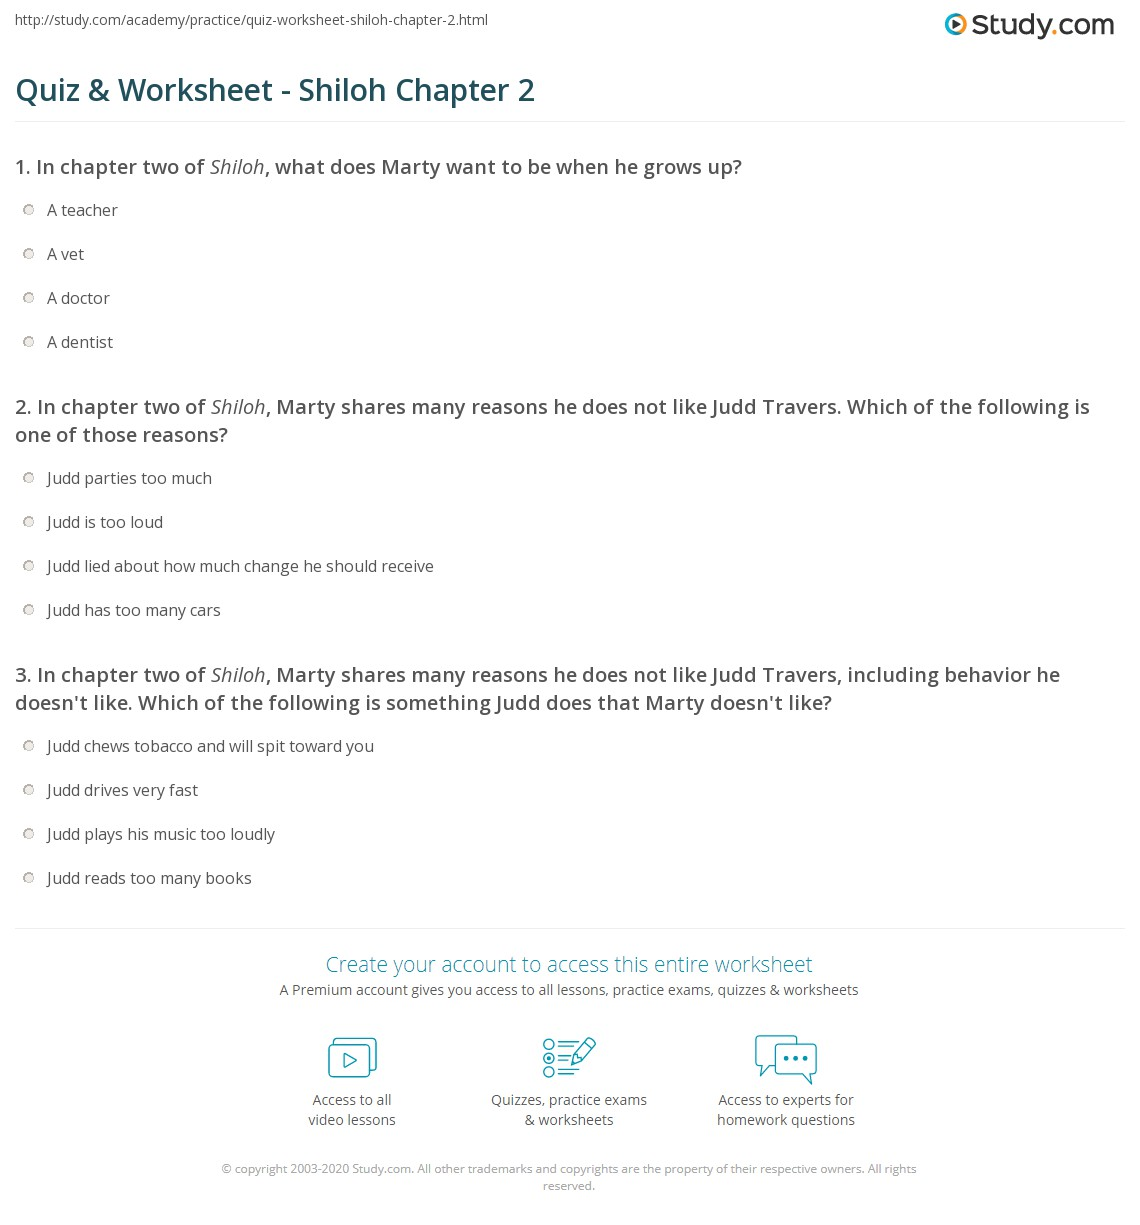 quiz worksheet shiloh chapter com in chapter two of shiloh marty shares many reasons he does not like judd travers which of the following is one of those reasons